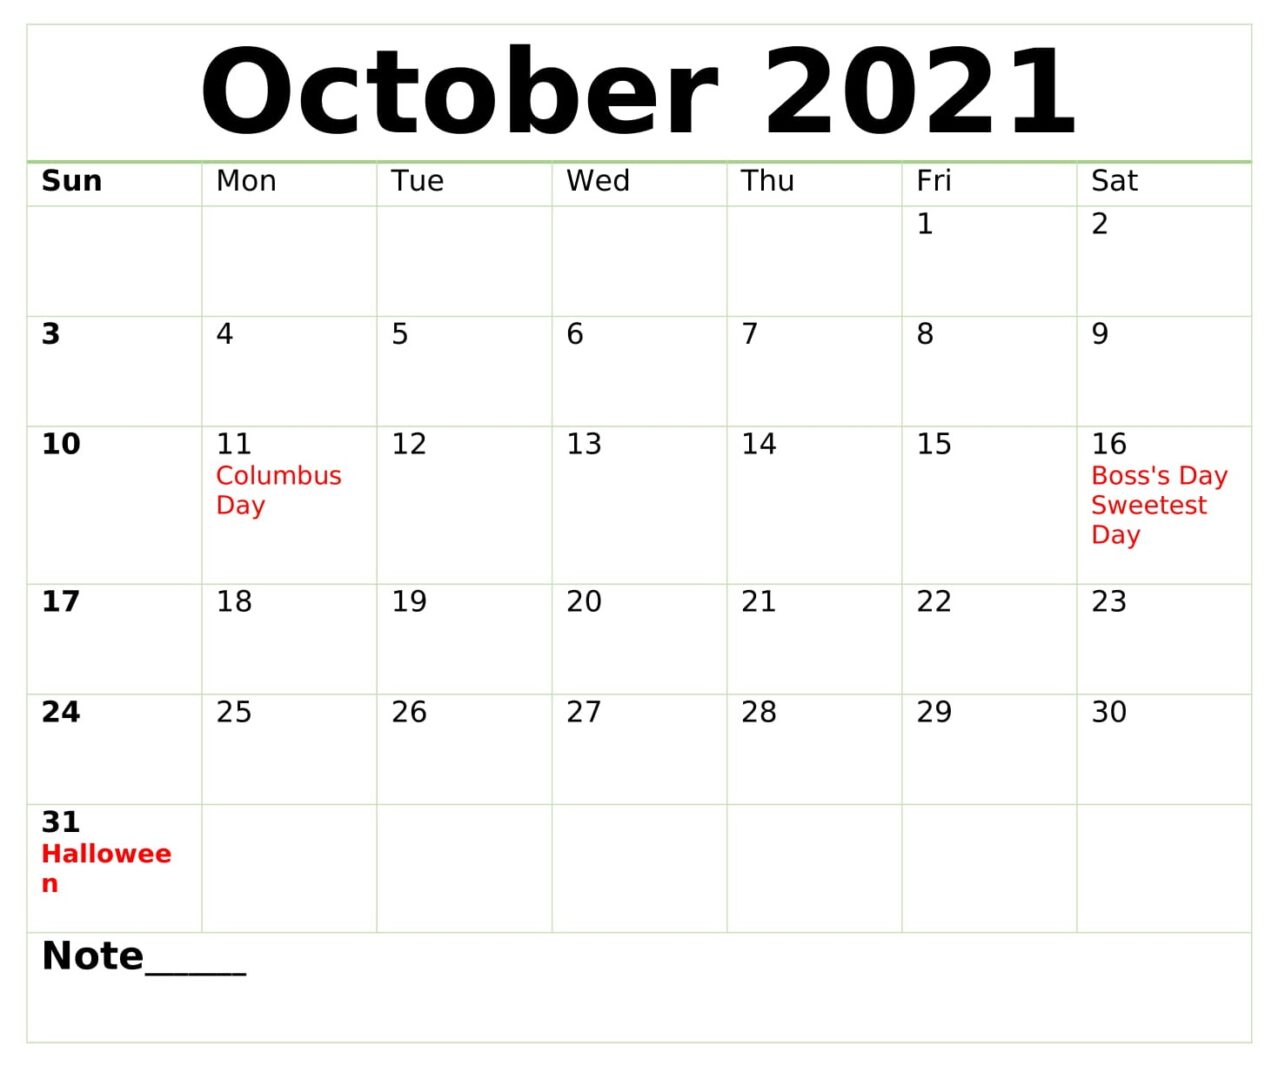 October 2021 Calendar With Holidays Download